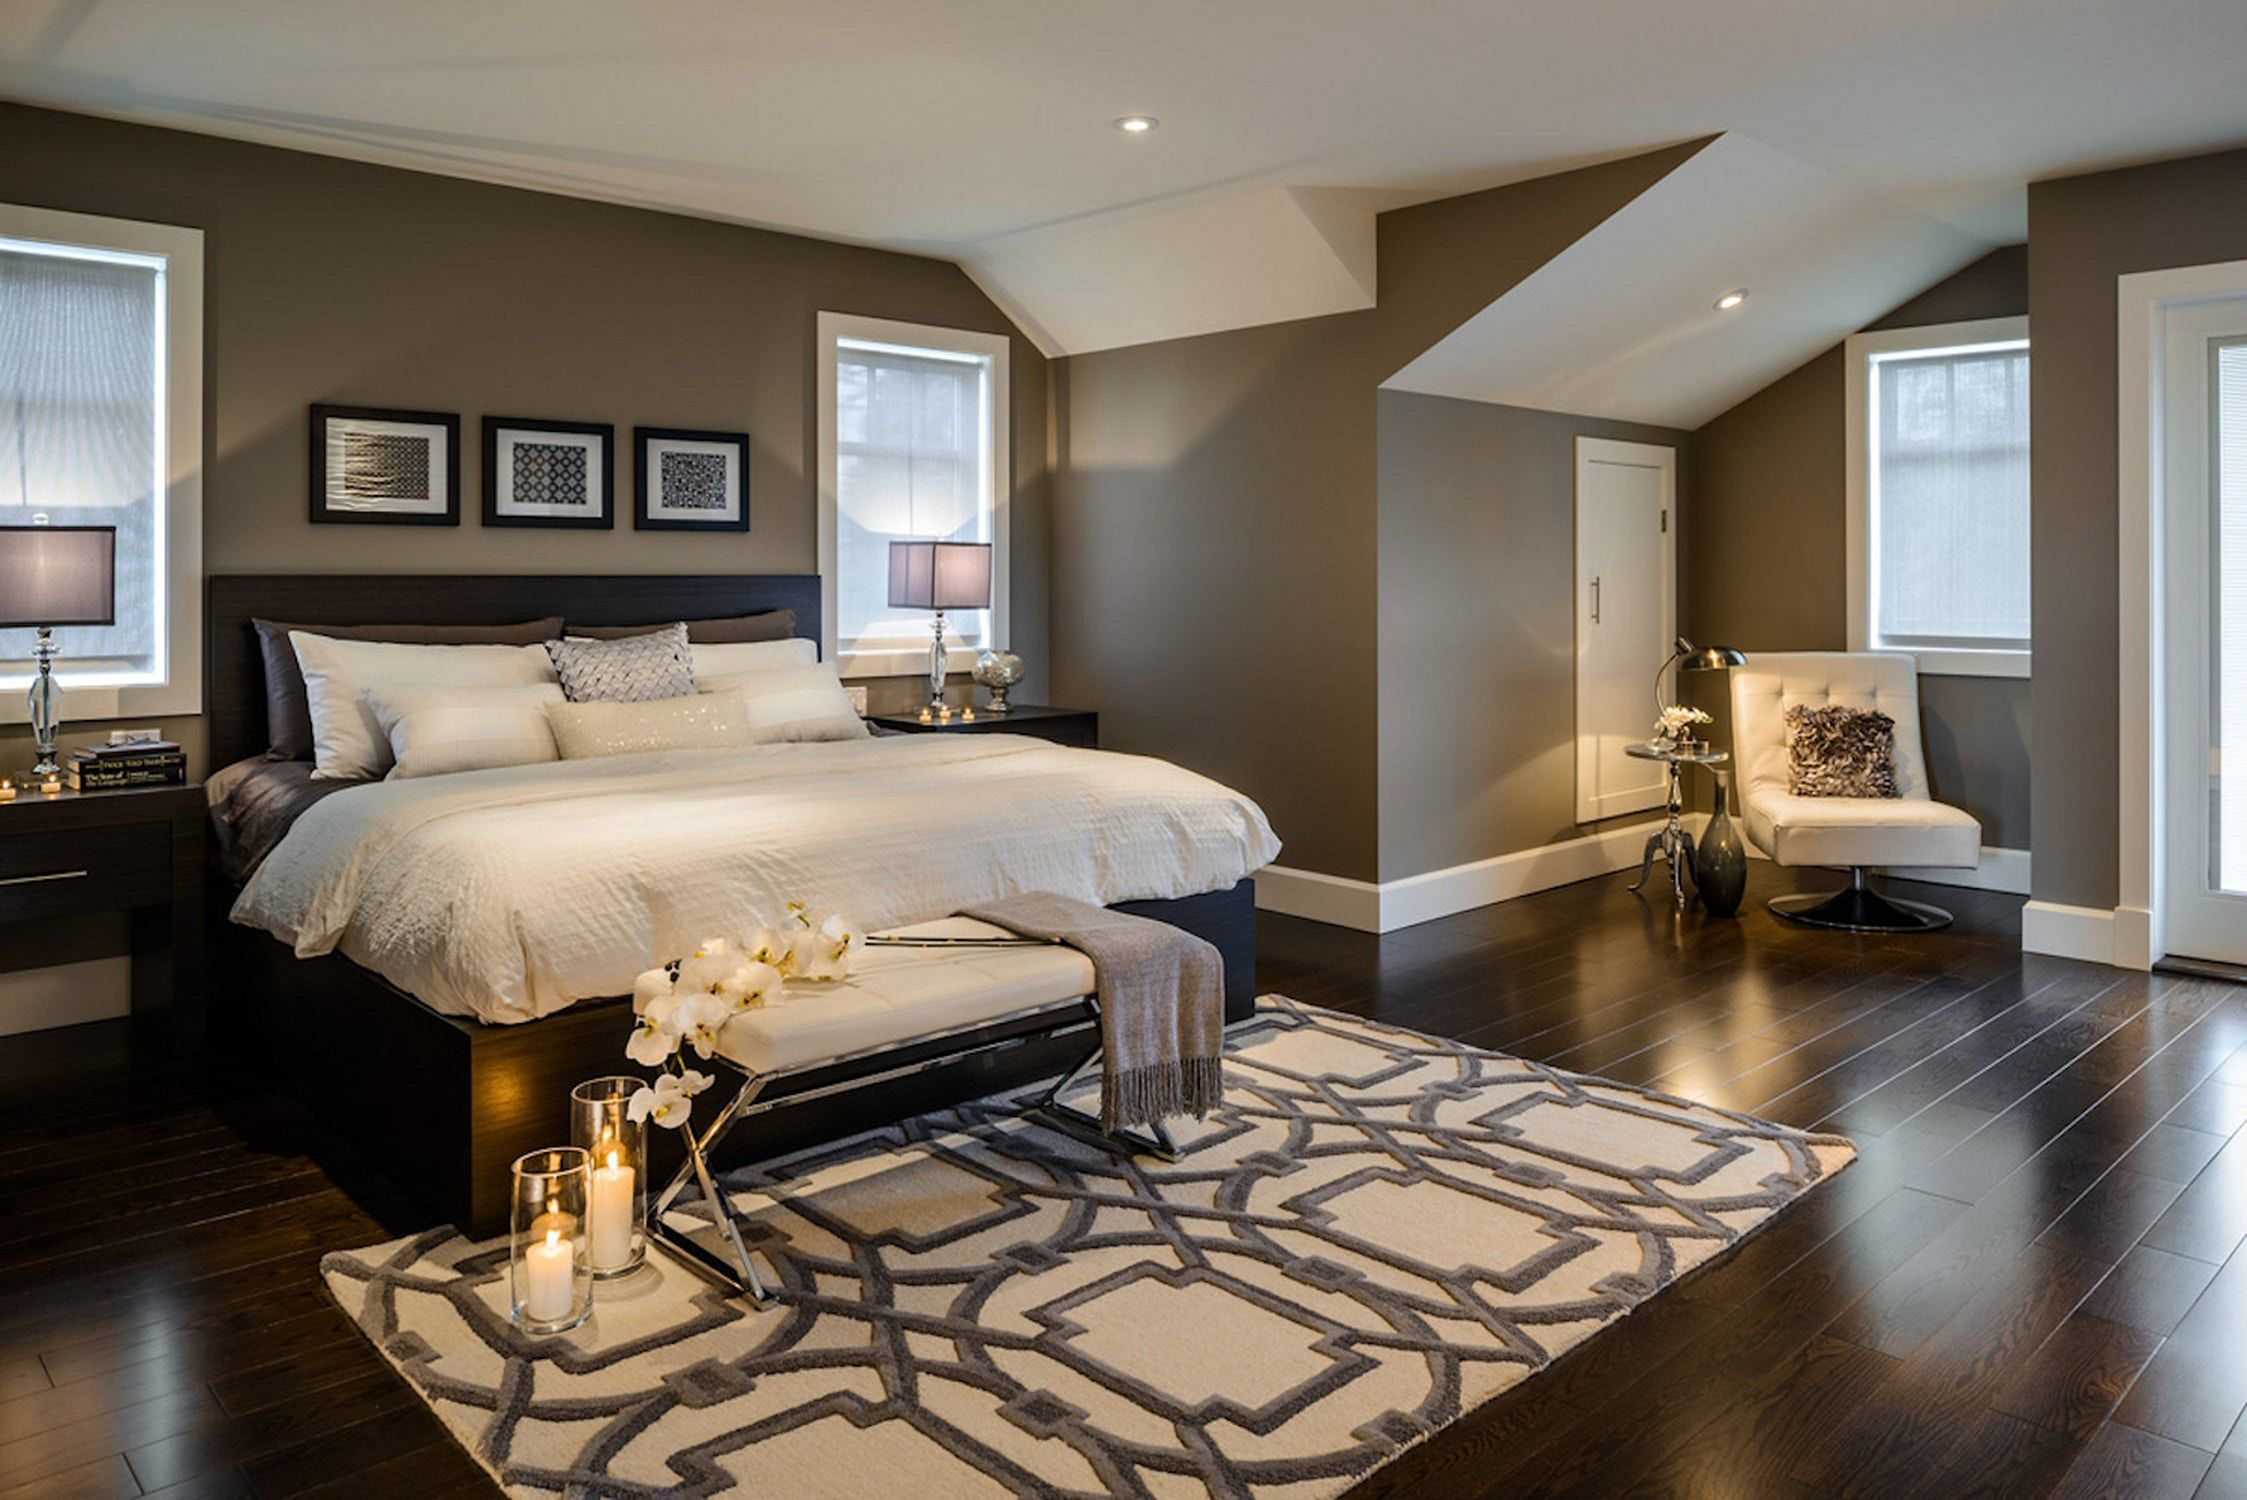 15 Modern Master Bedroom Decoration Ideas You Must Have In 2020 Modern Bedroom Bedroom Interior Bedroom Colors